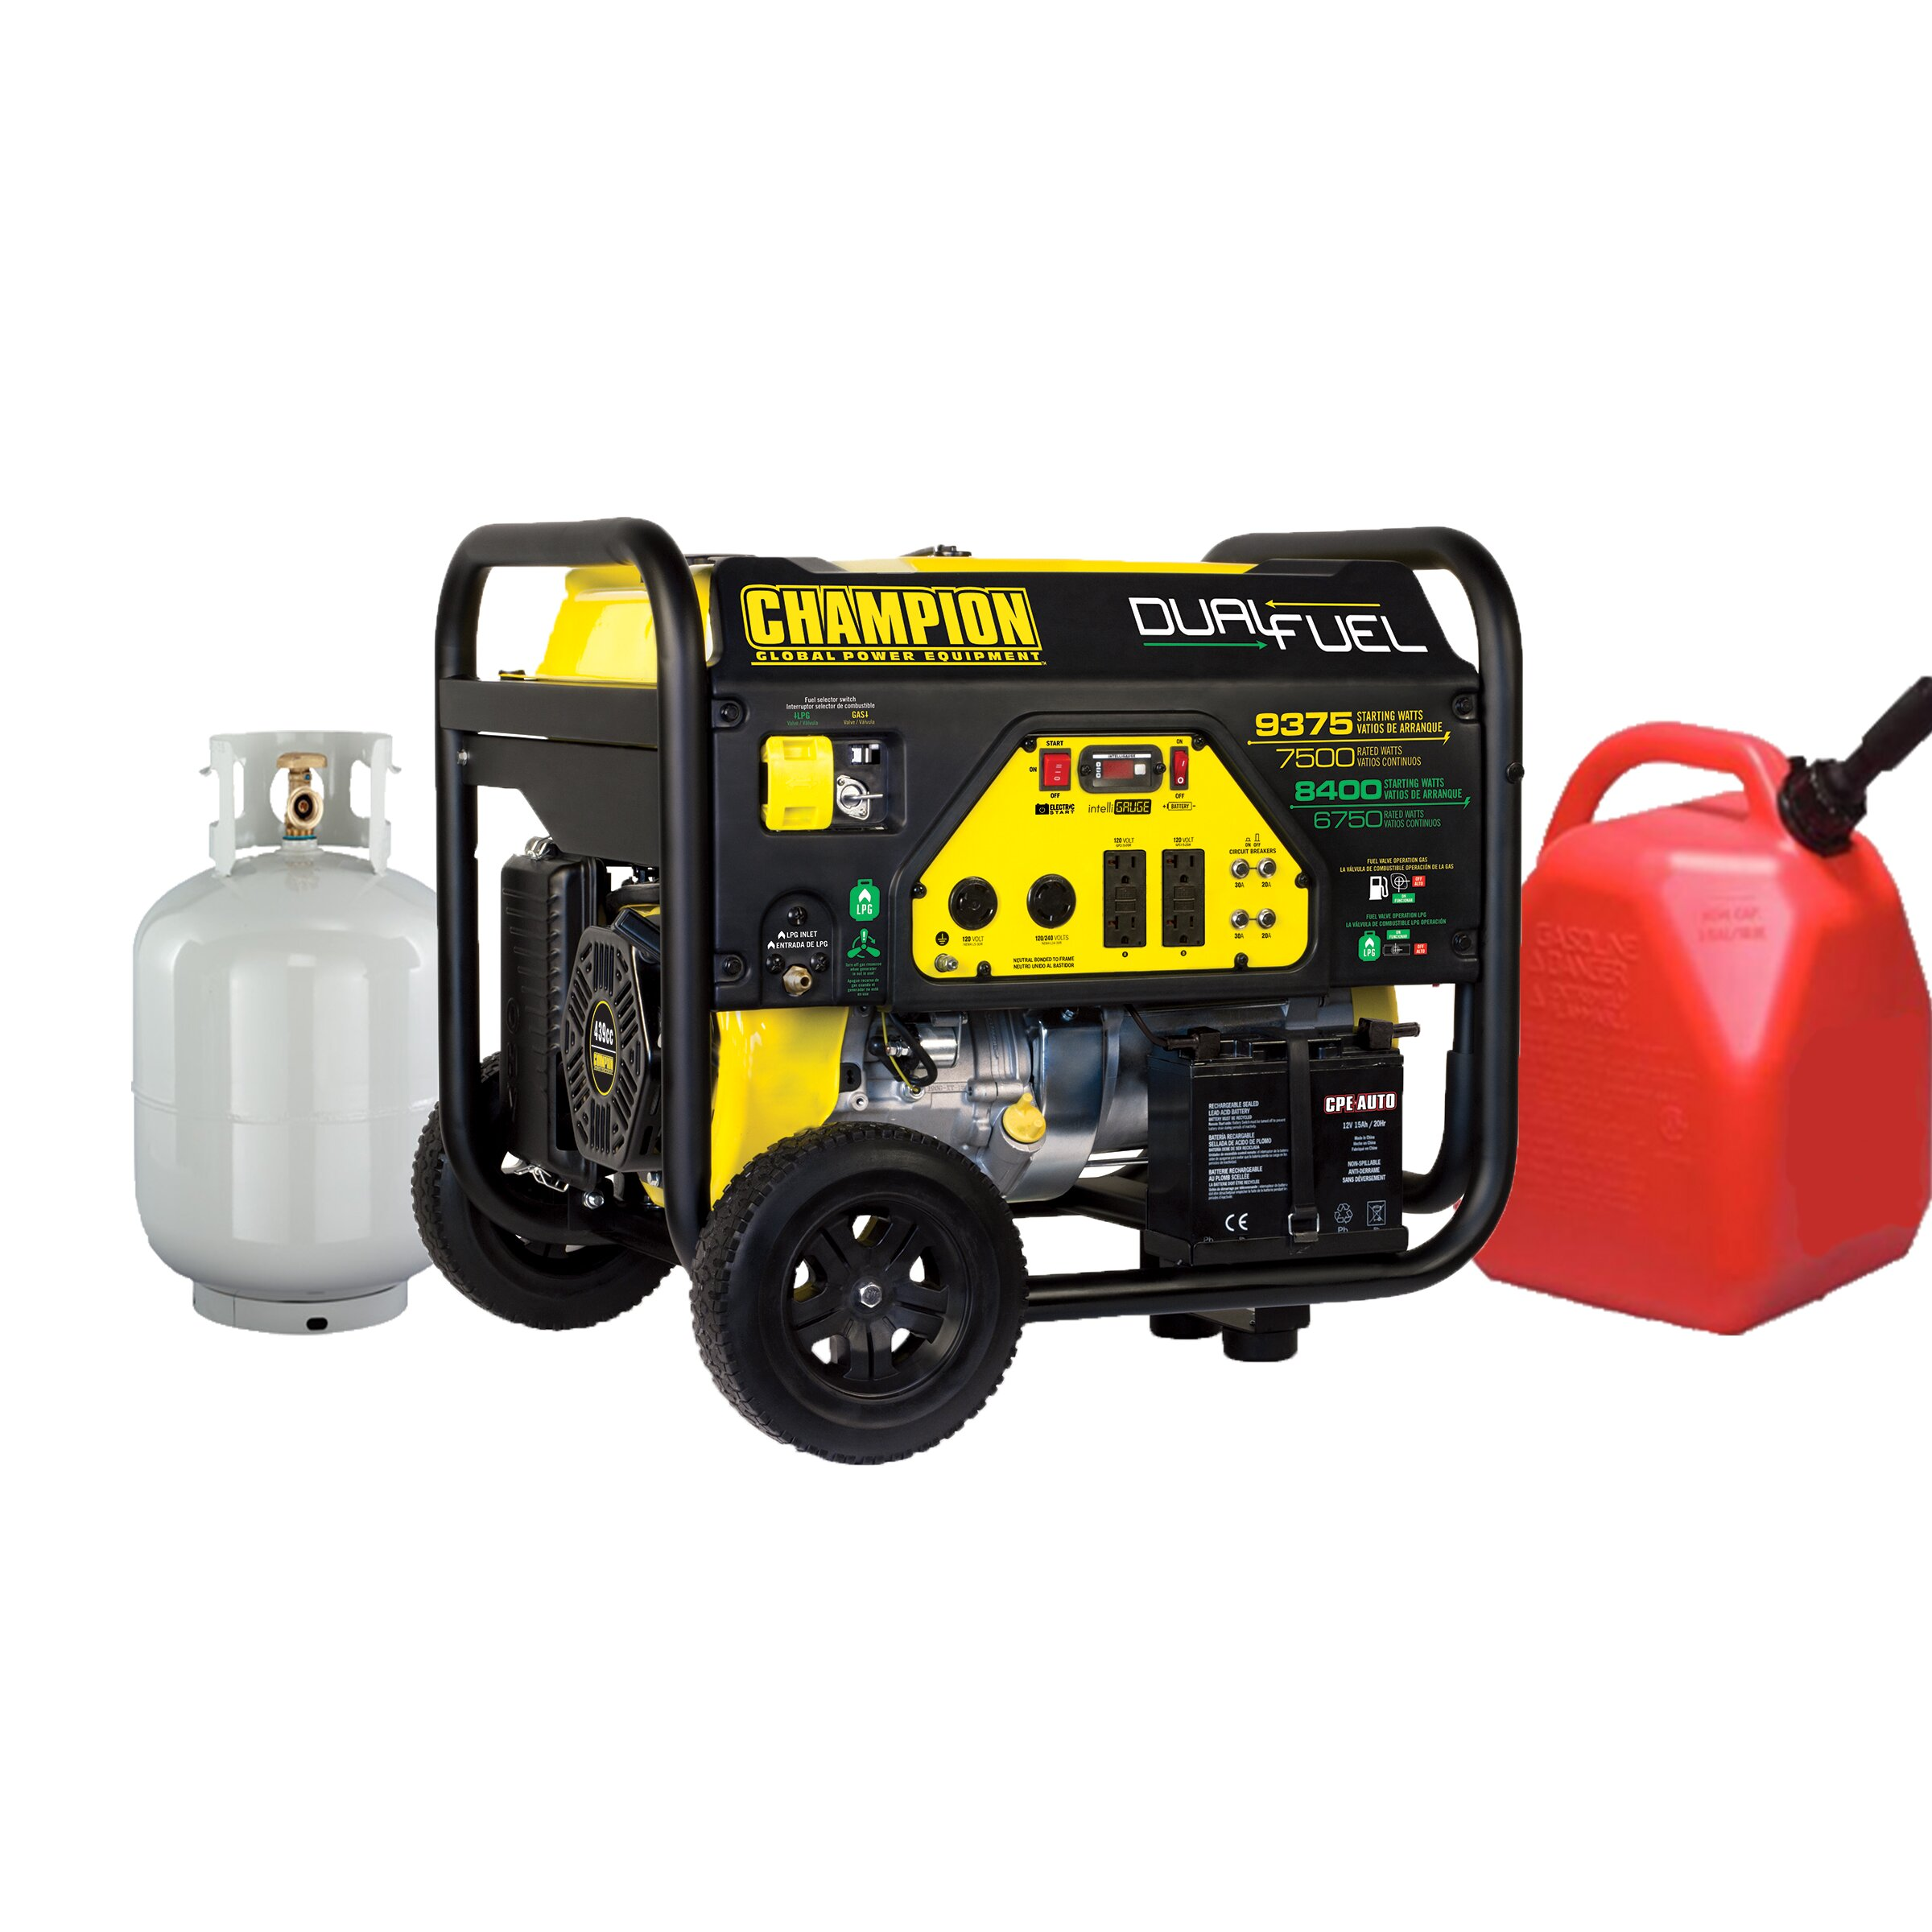 champion power equipment generator reviews